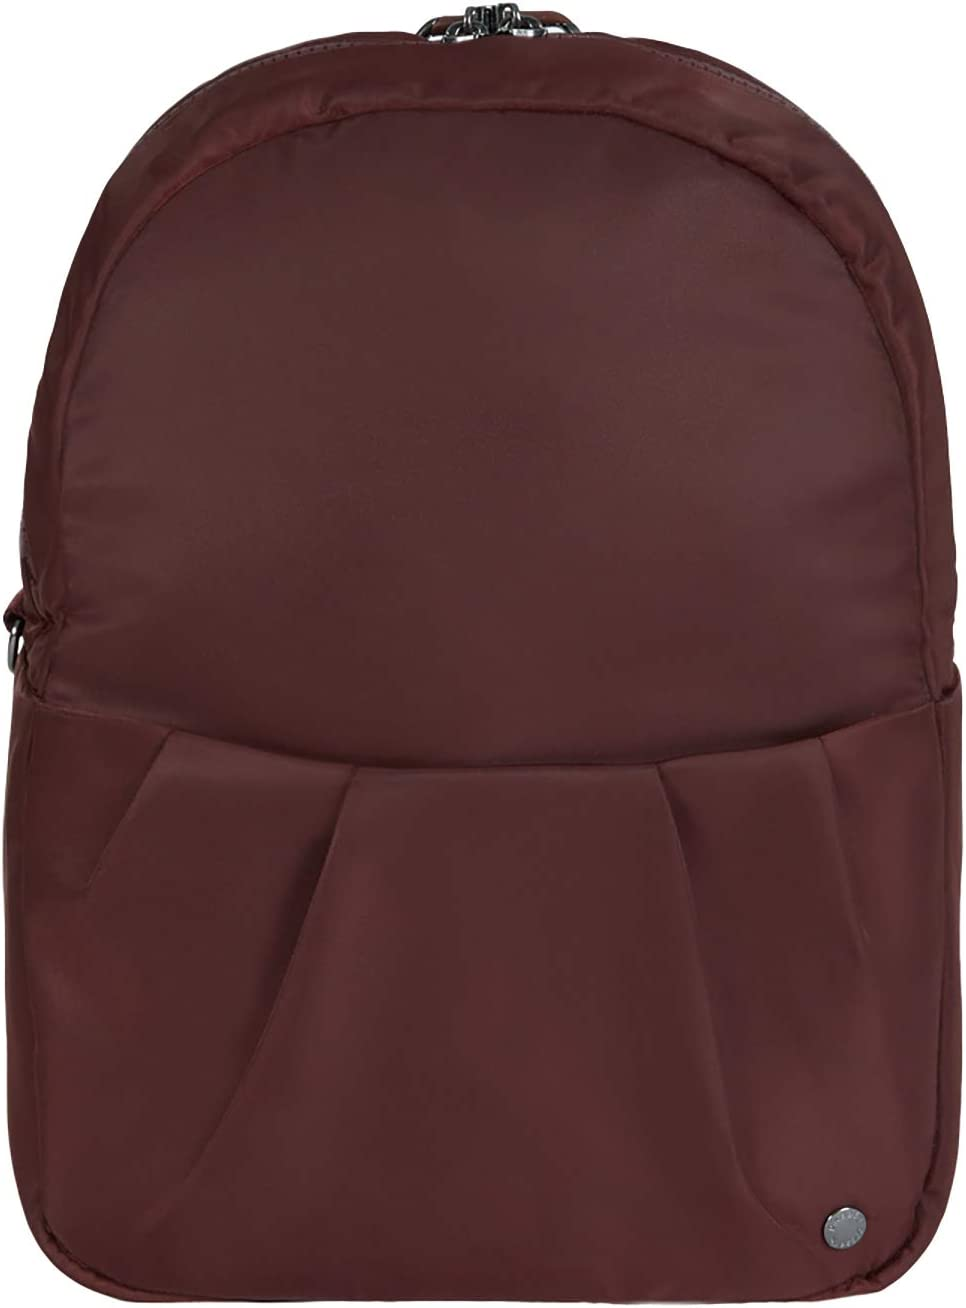 "PacSafe Women's Citysafe CX Anti Theft Convertible Backpack-Fits 10"" Tablet, Merlot, 8 Liter"